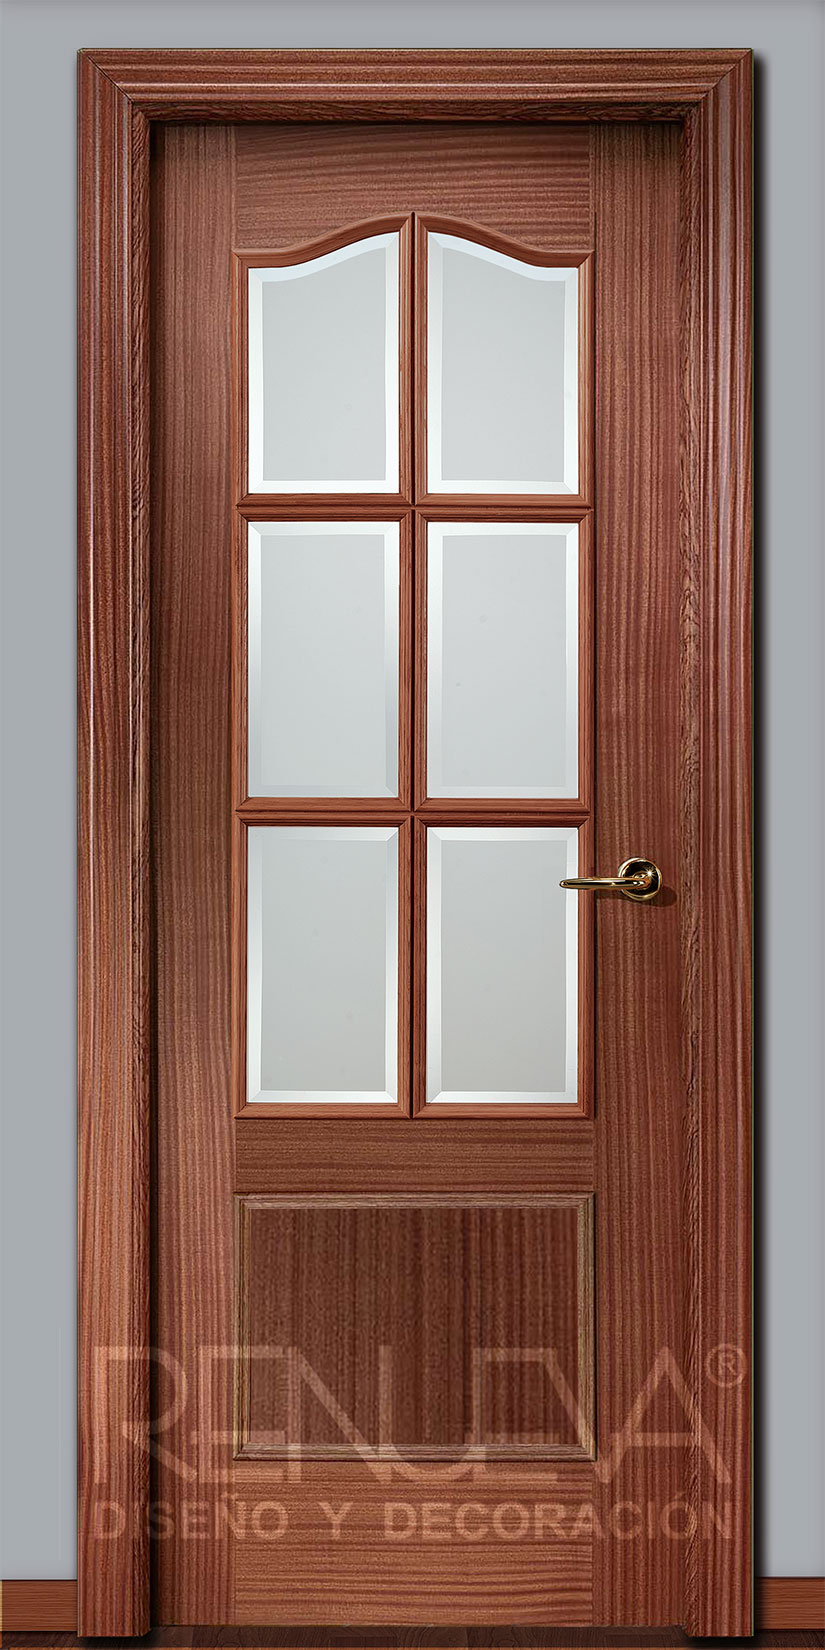 Oferta puerta modelo 32 6v madera de sapelly barnizada for Decor 1 32